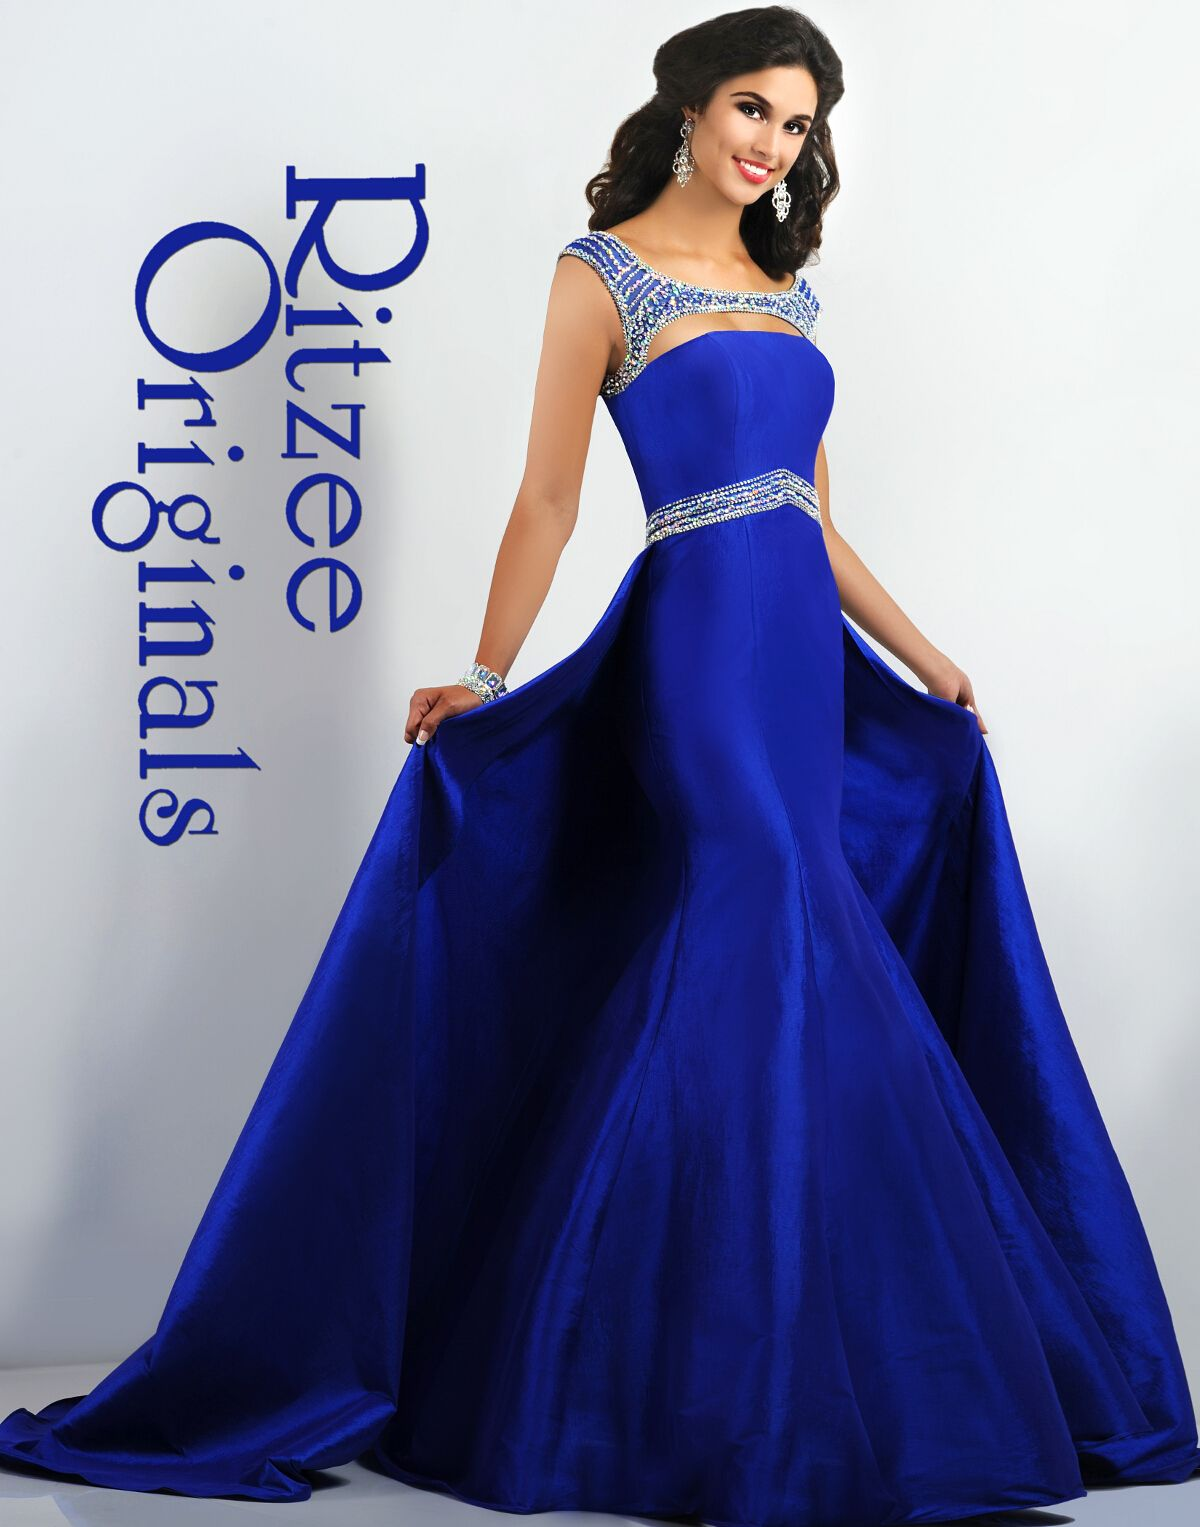 Ritzee Originals   Prom Bling   Pinterest   Pageants, Prom and Gowns